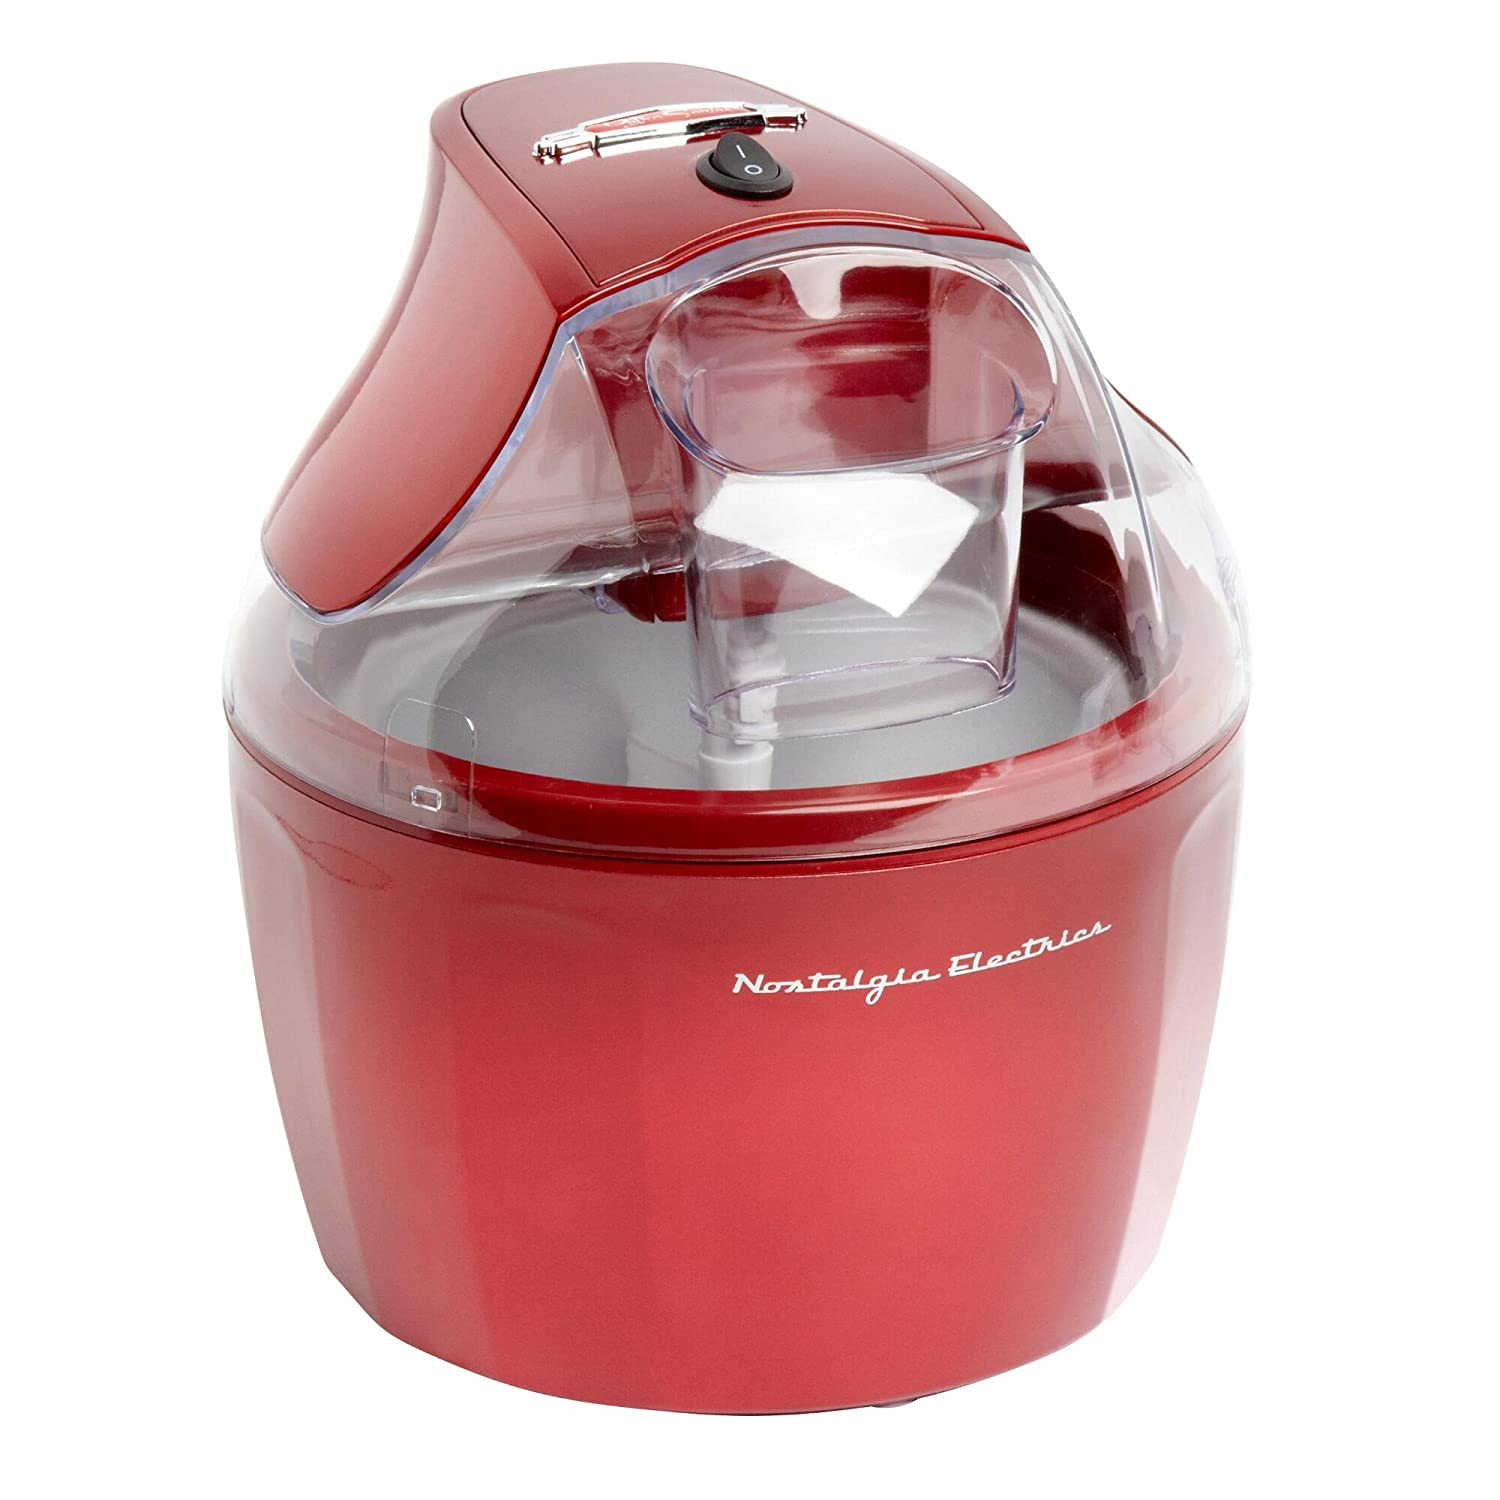 Nostalgia Ice Cream Maker | Stainless Steel 1.5 Quart Ice Cream Makers, Red